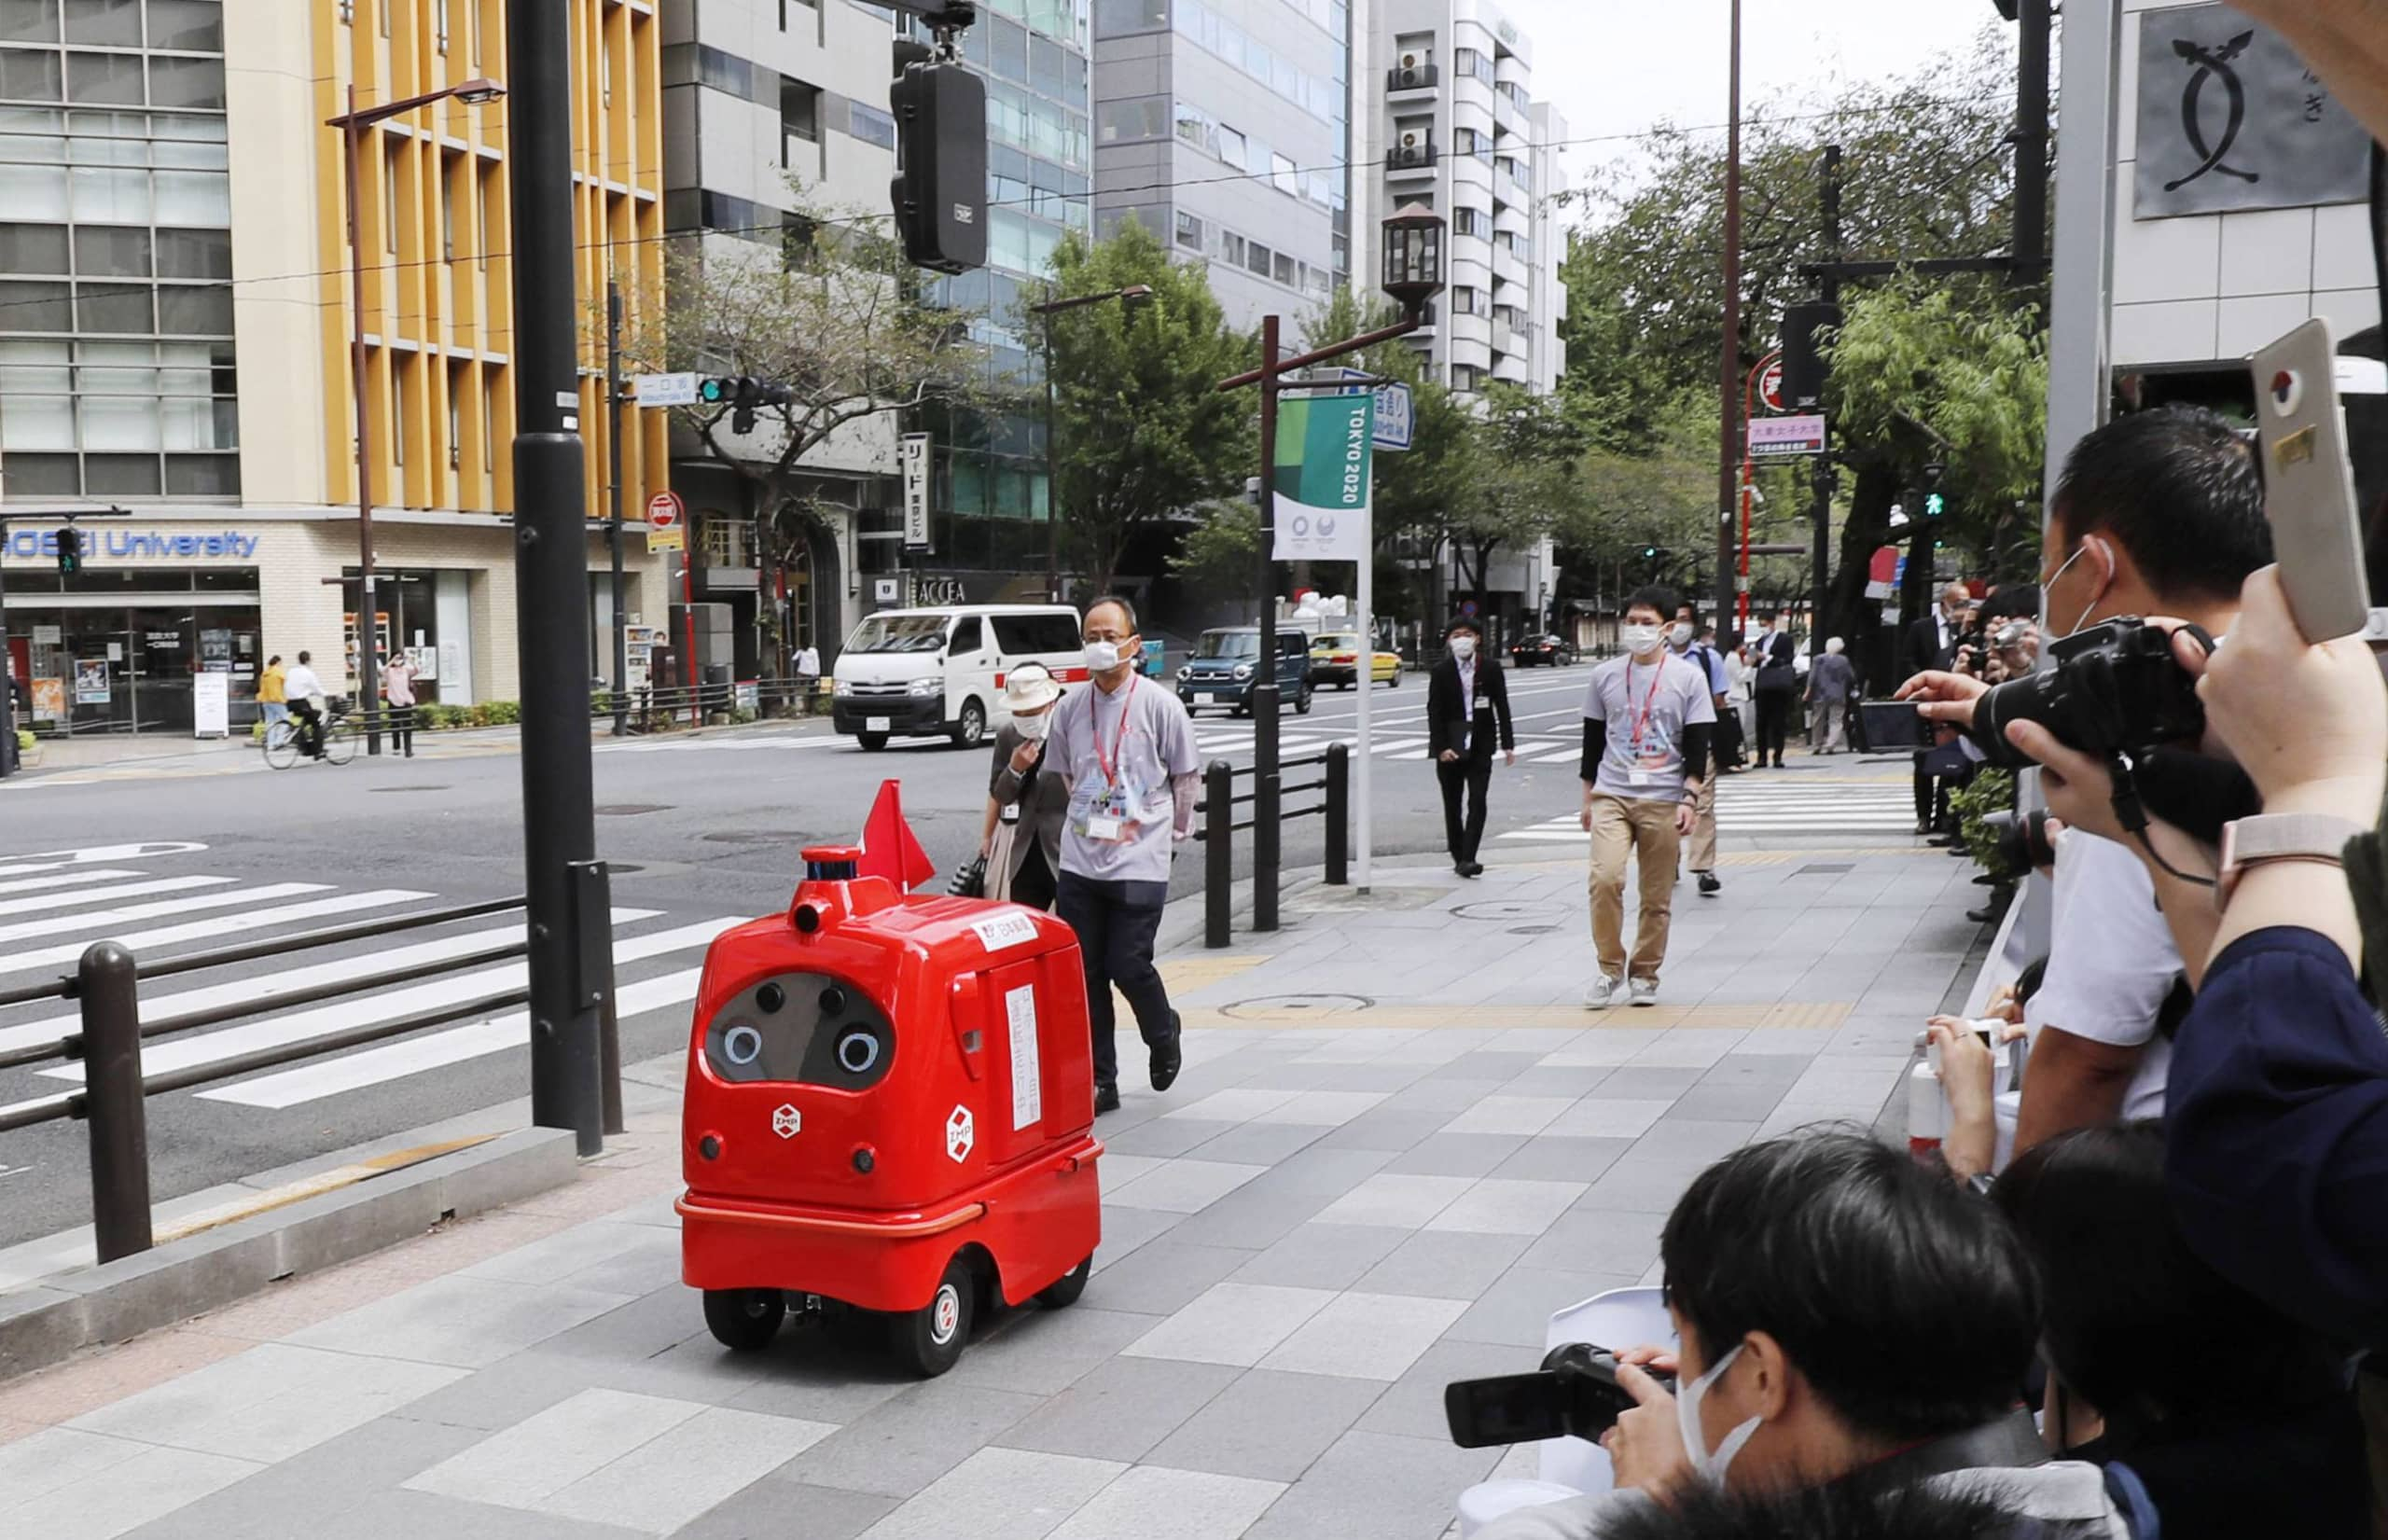 Japan is stepping up its push for autonomous delivery services in the hope they will alleviate the acute labor shortage in the aging country. | KYODO